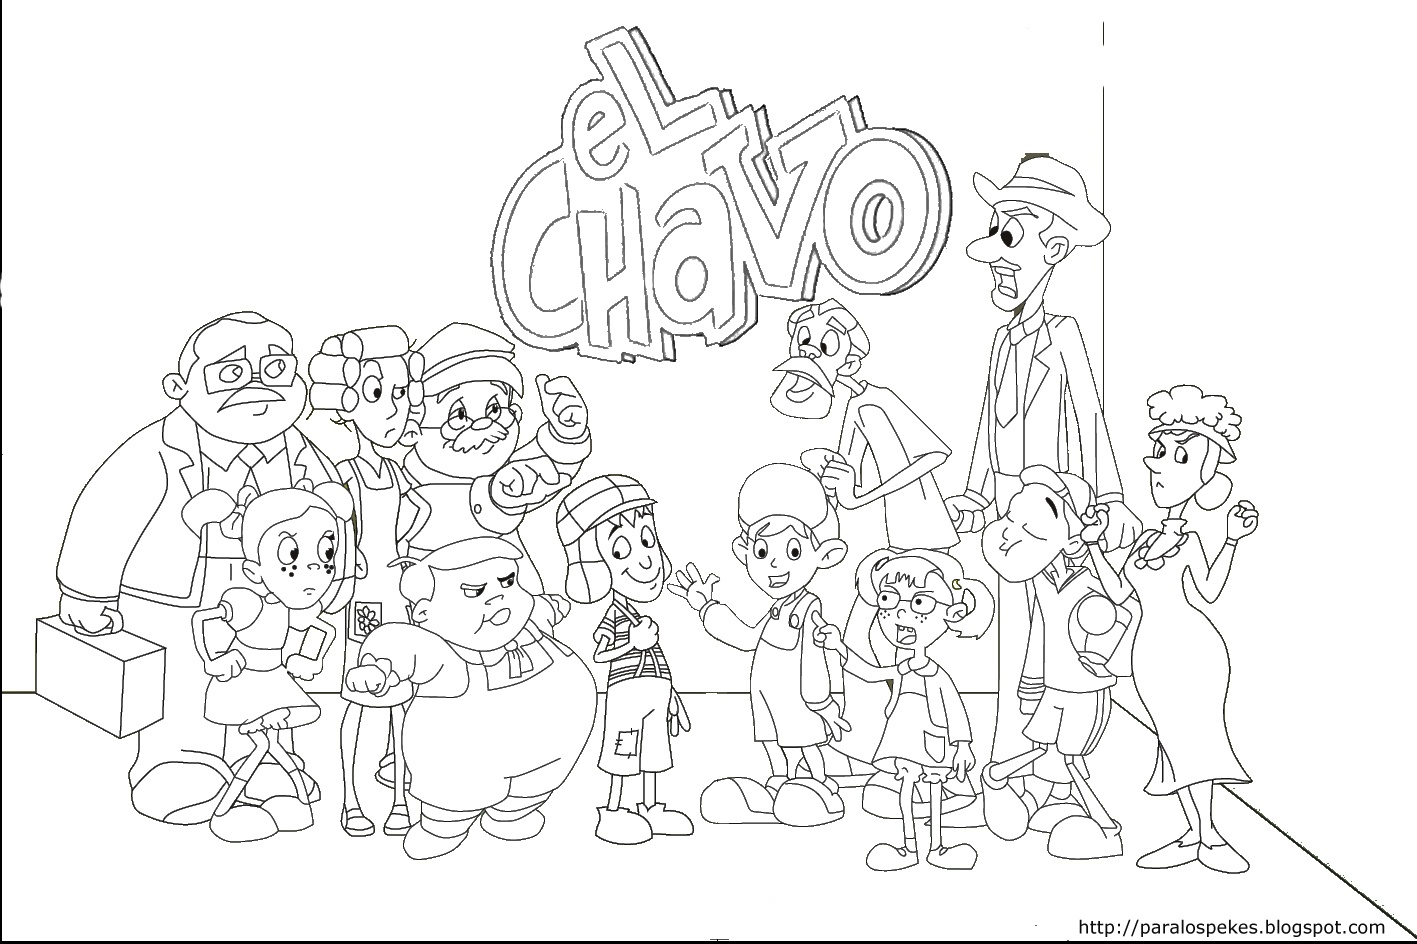 chavo coloring pages - photo#3